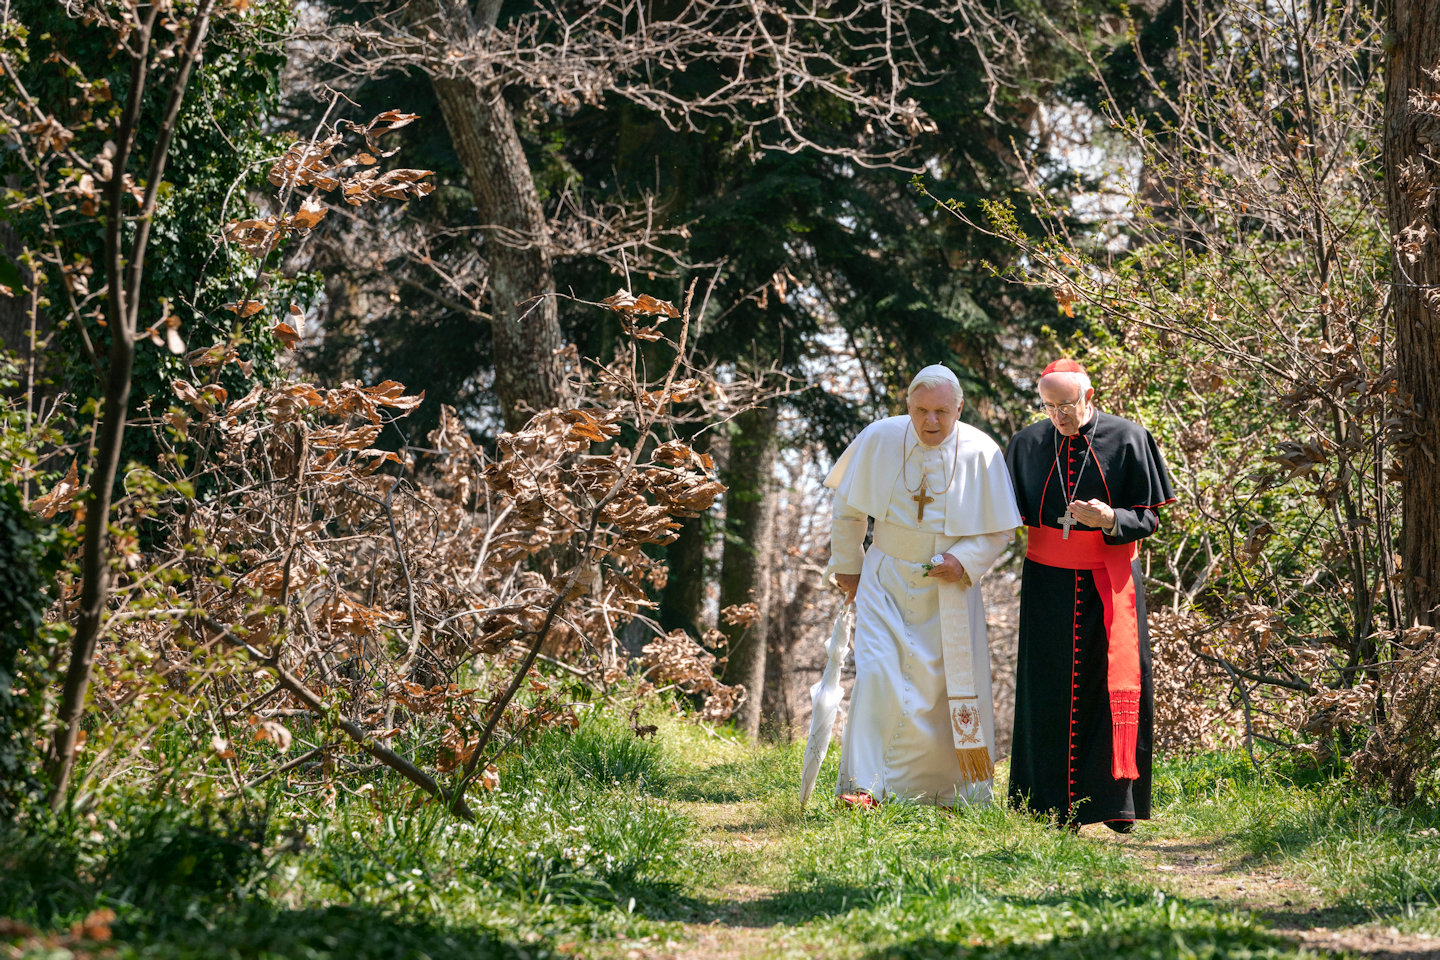 the two popes - los dos papas - netflix